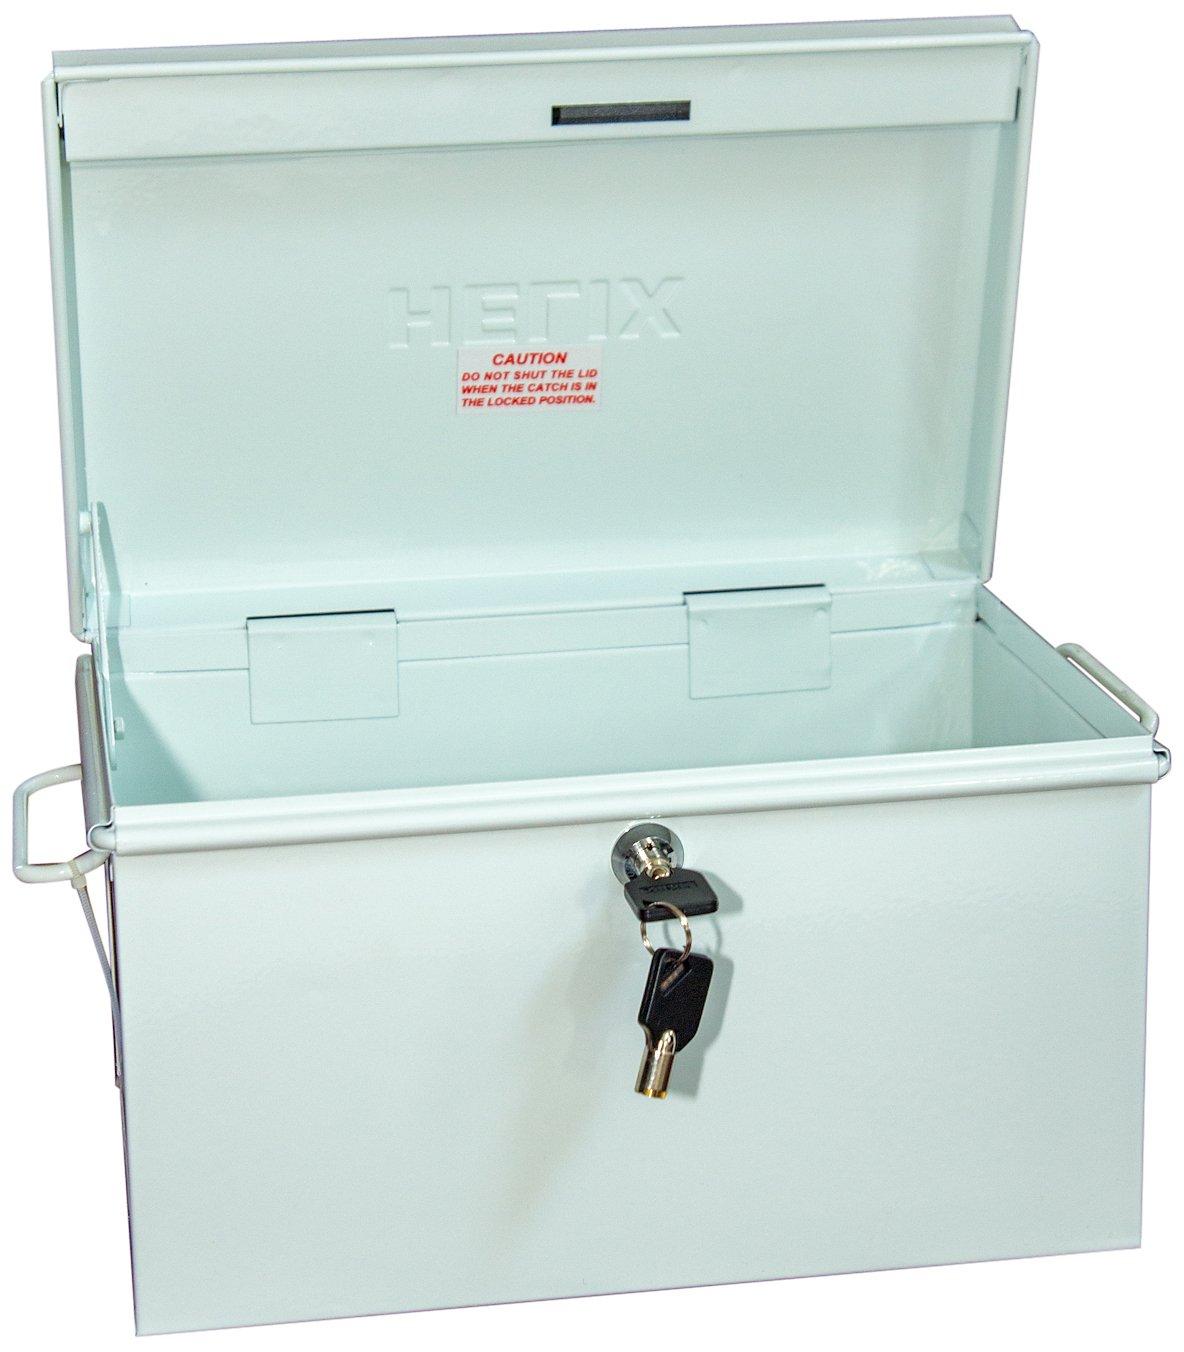 Helix Locking Prescription Drug Security Chest with Tether, Heavy-Duty Steel Construction, Size 12.5 x 7.25 x 8 inches – White (32480)